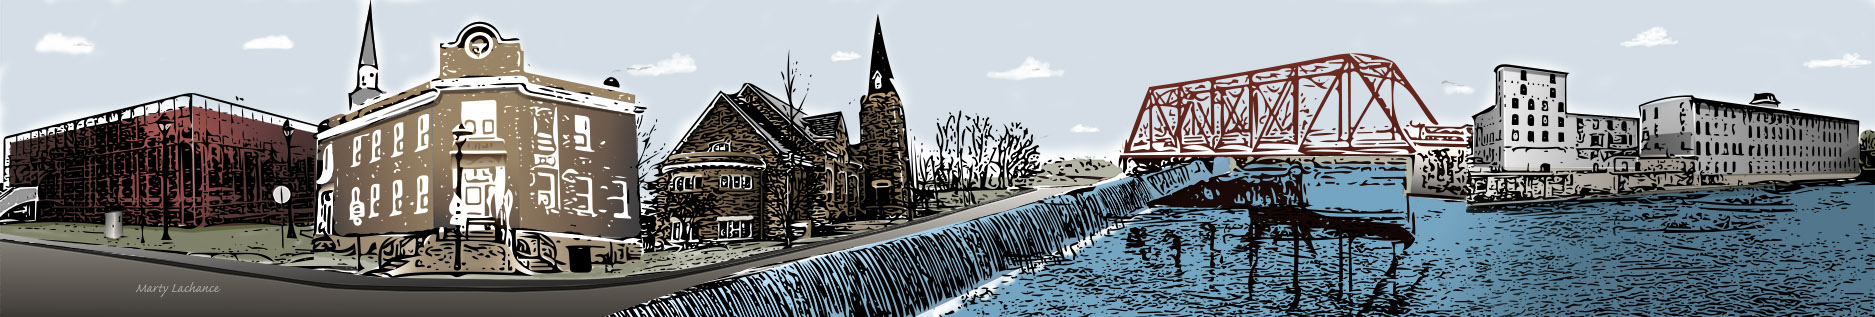 Hespeler by Marty Lachance